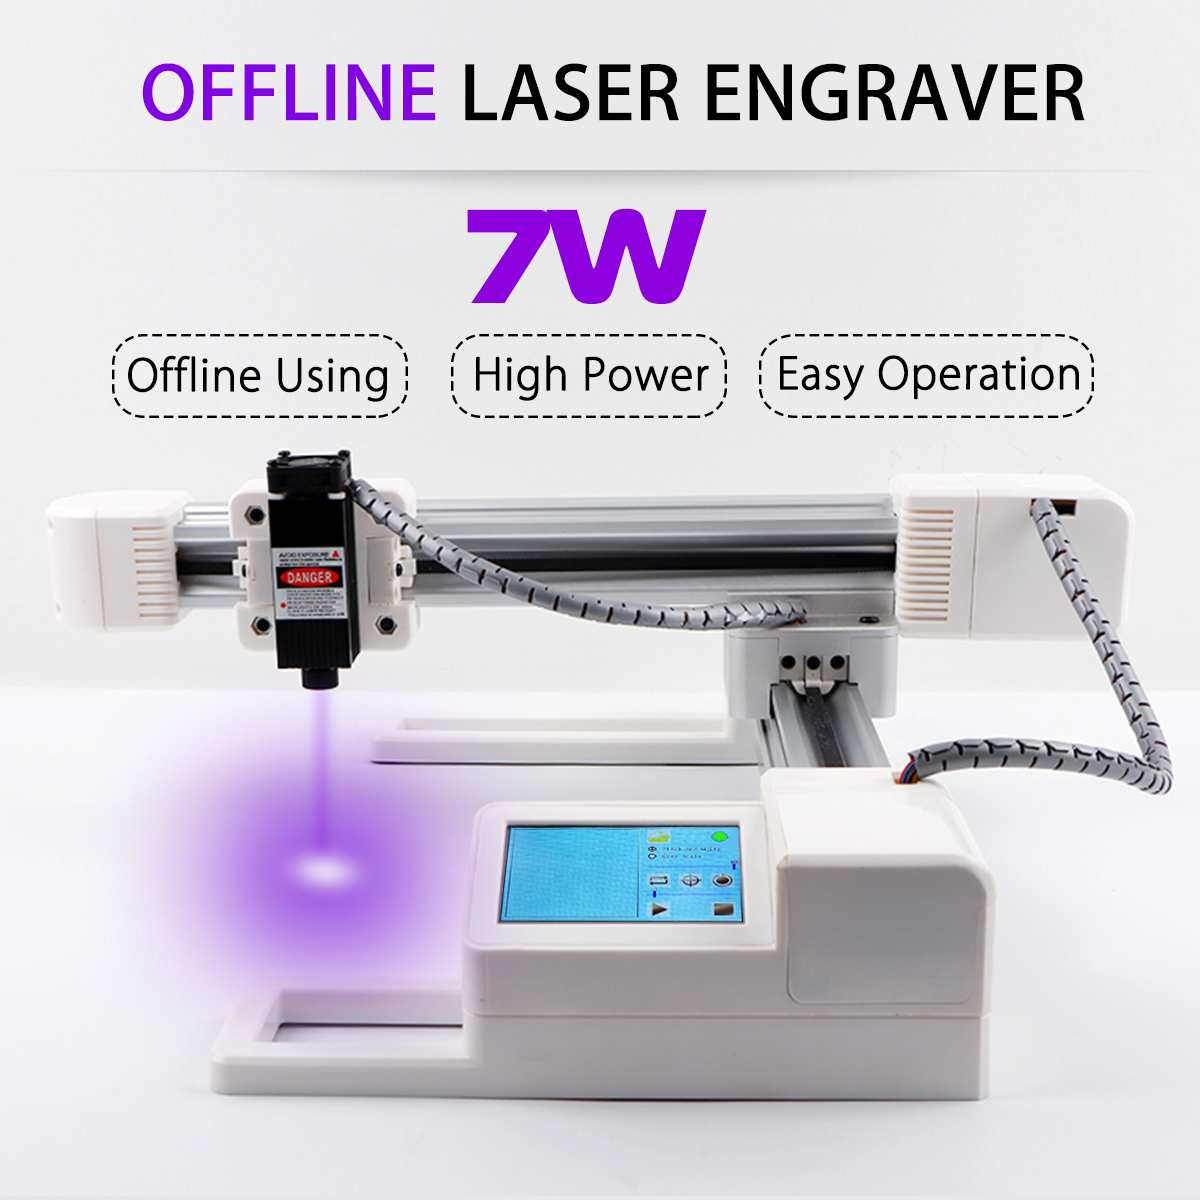 3W/7W USB Offline Laser Engraver DIY Logo Mark Printer Big Power CNC Laser Engraving Carving Machine 15.5x17.5cm Carving Area